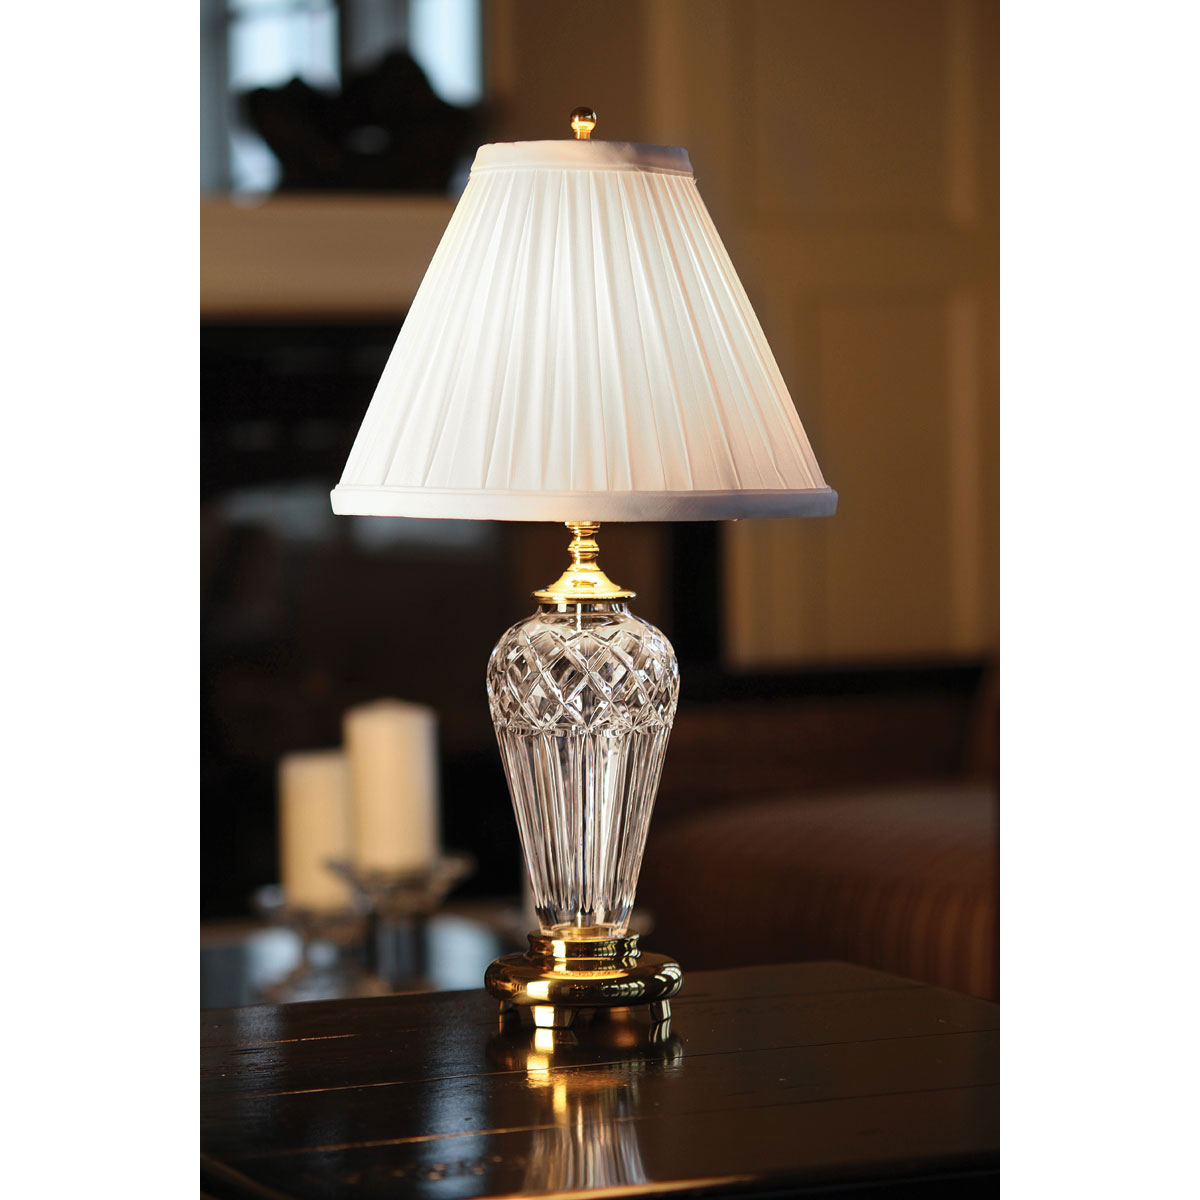 "Waterford Crystal, Belline Polished Brass 18"" Crystal Lamp"